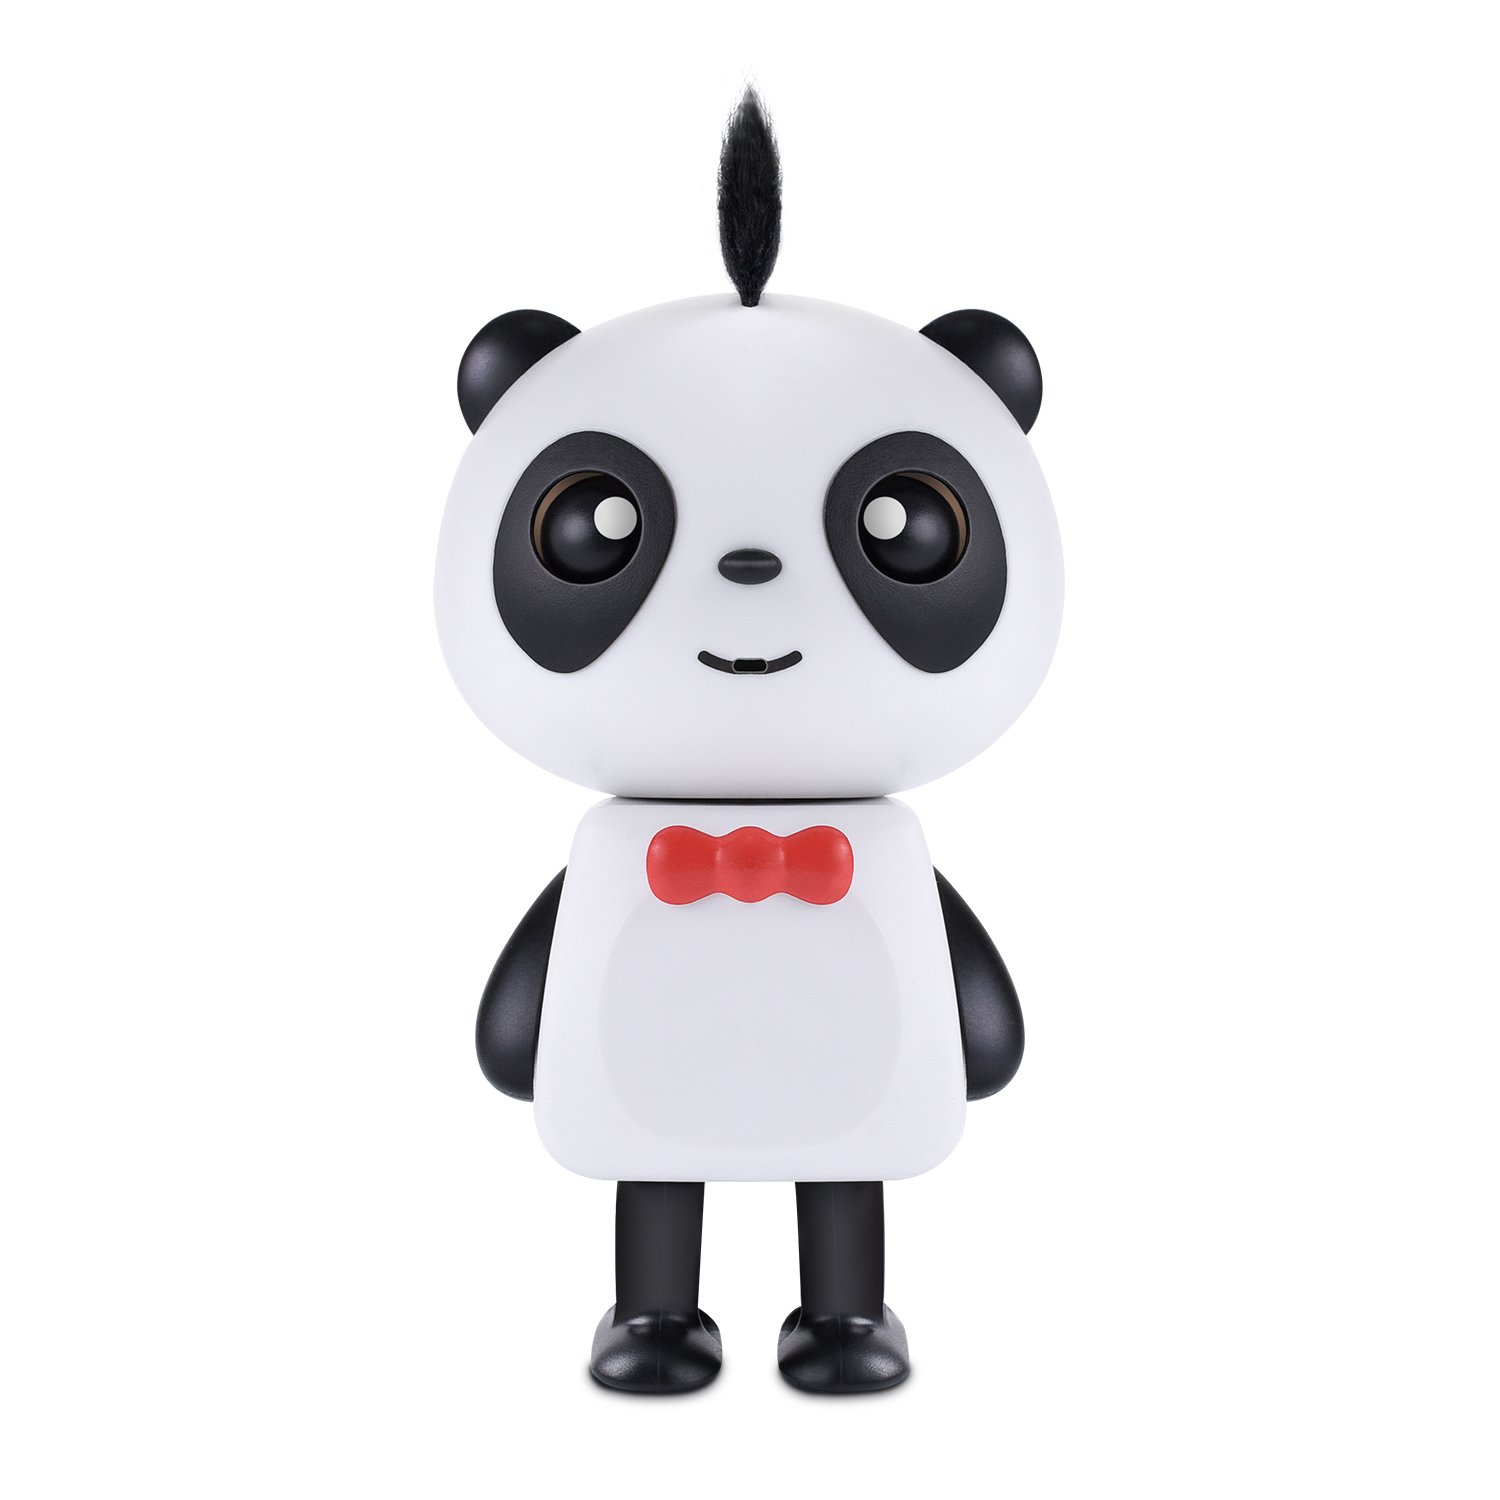 YKL WORLD Novelty Baby Panda Toy Rechargeable LED Dancing Music Panda Robot Bluetooth Speaker Gift Kids Boys Girls Black White